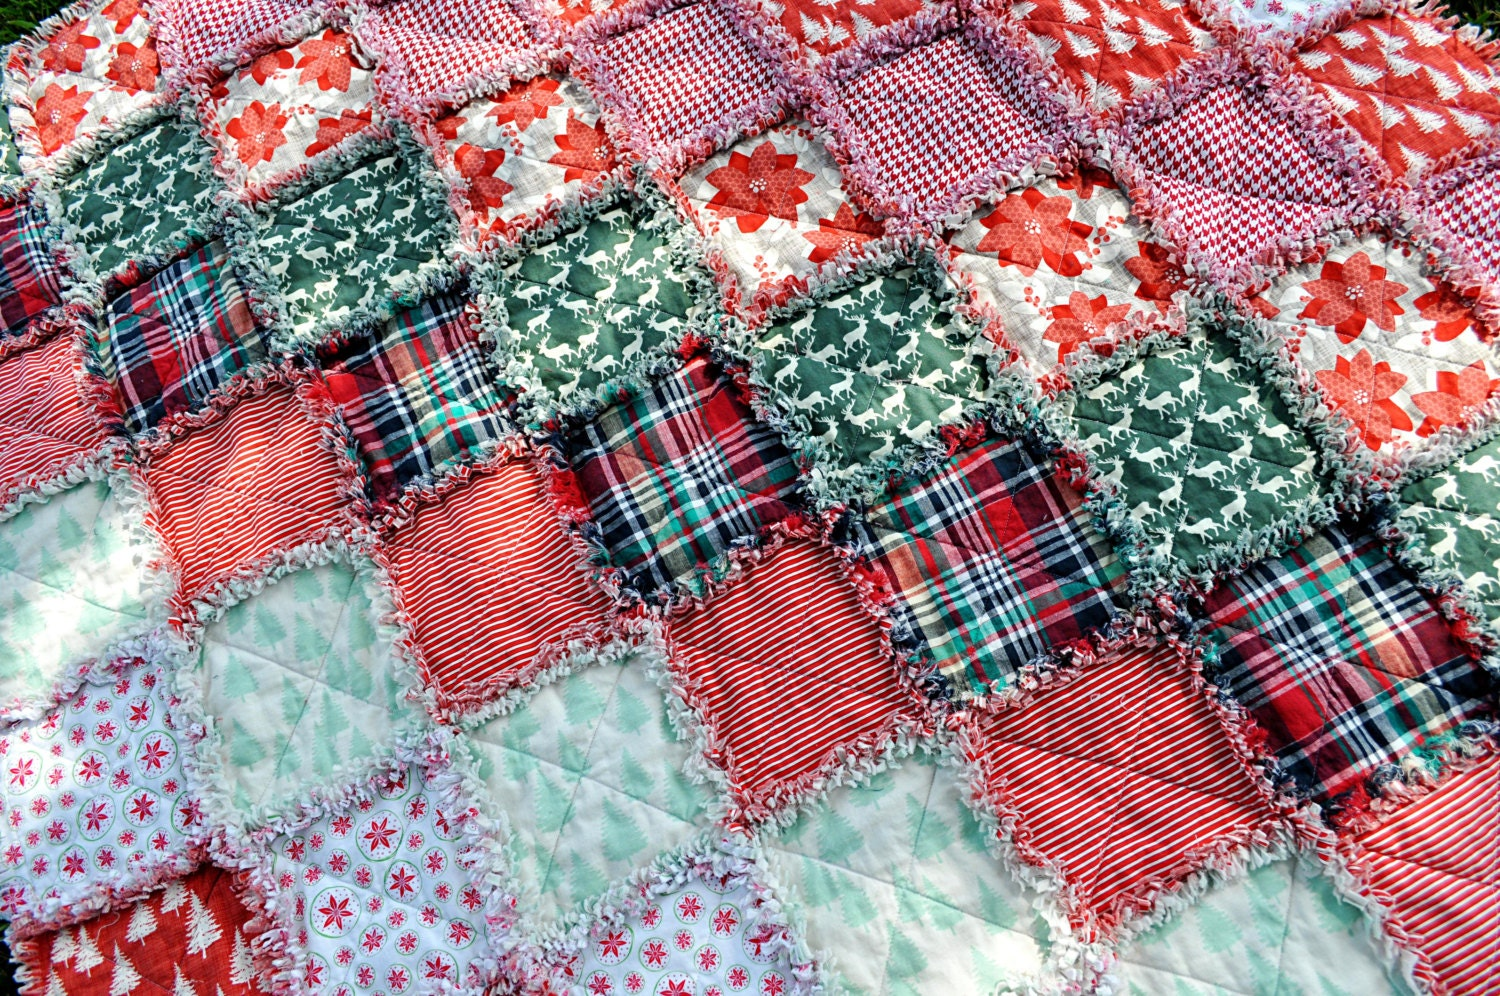 NEW LISTING-Large Christmas Rag Quilt Blanket Featuring